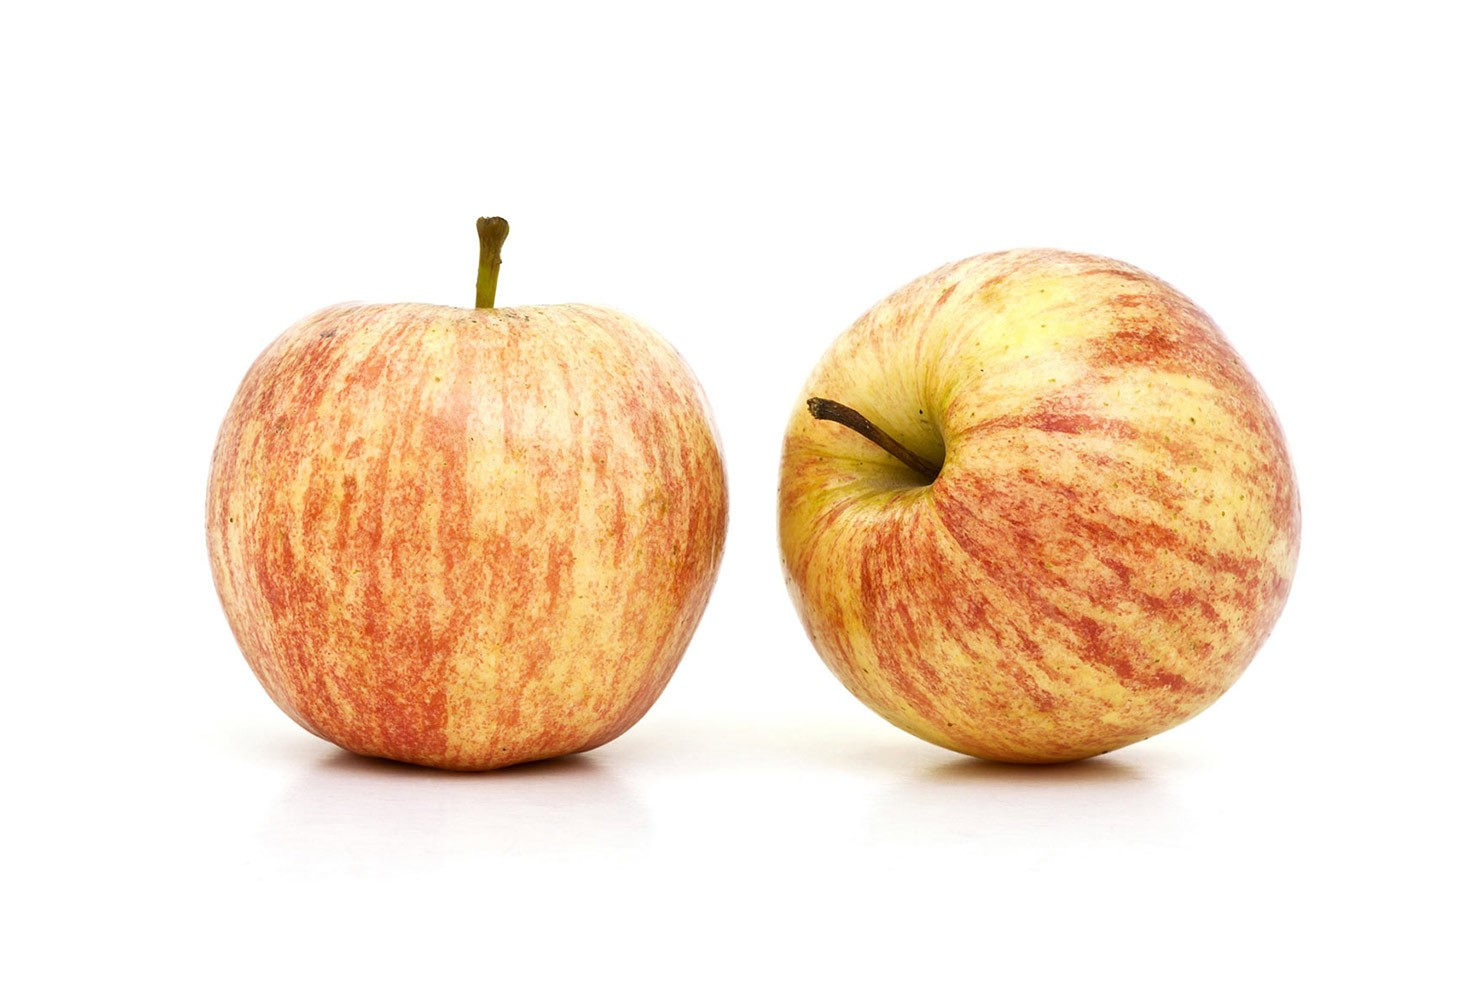 Two apples on white background | Hurry The Food Up